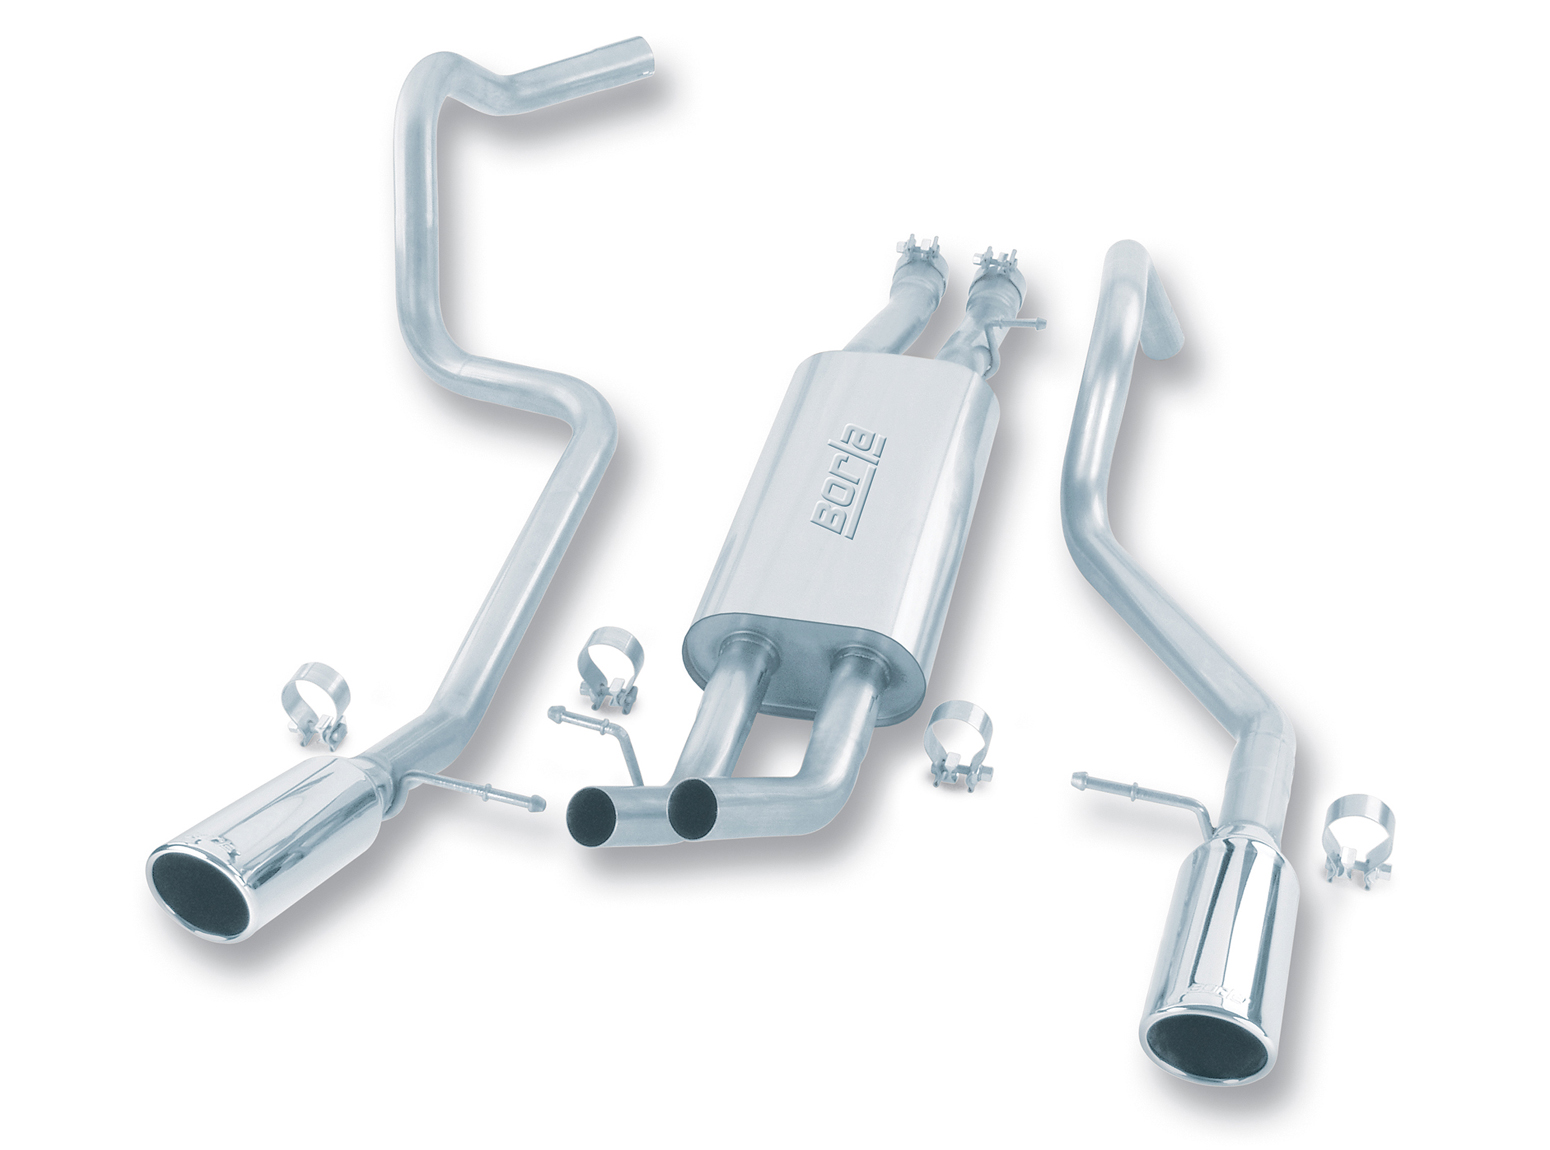 "Chevrolet Silverado 1500 6.0l V8 (incl Hd) 2001-2007 Borla 2.75"", 2.25"" Cat-Back Exhaust System - Single Round Rolled Angle-Cut  Long X Single Round Rolled Angle-Cut Intercooled"" Dia"